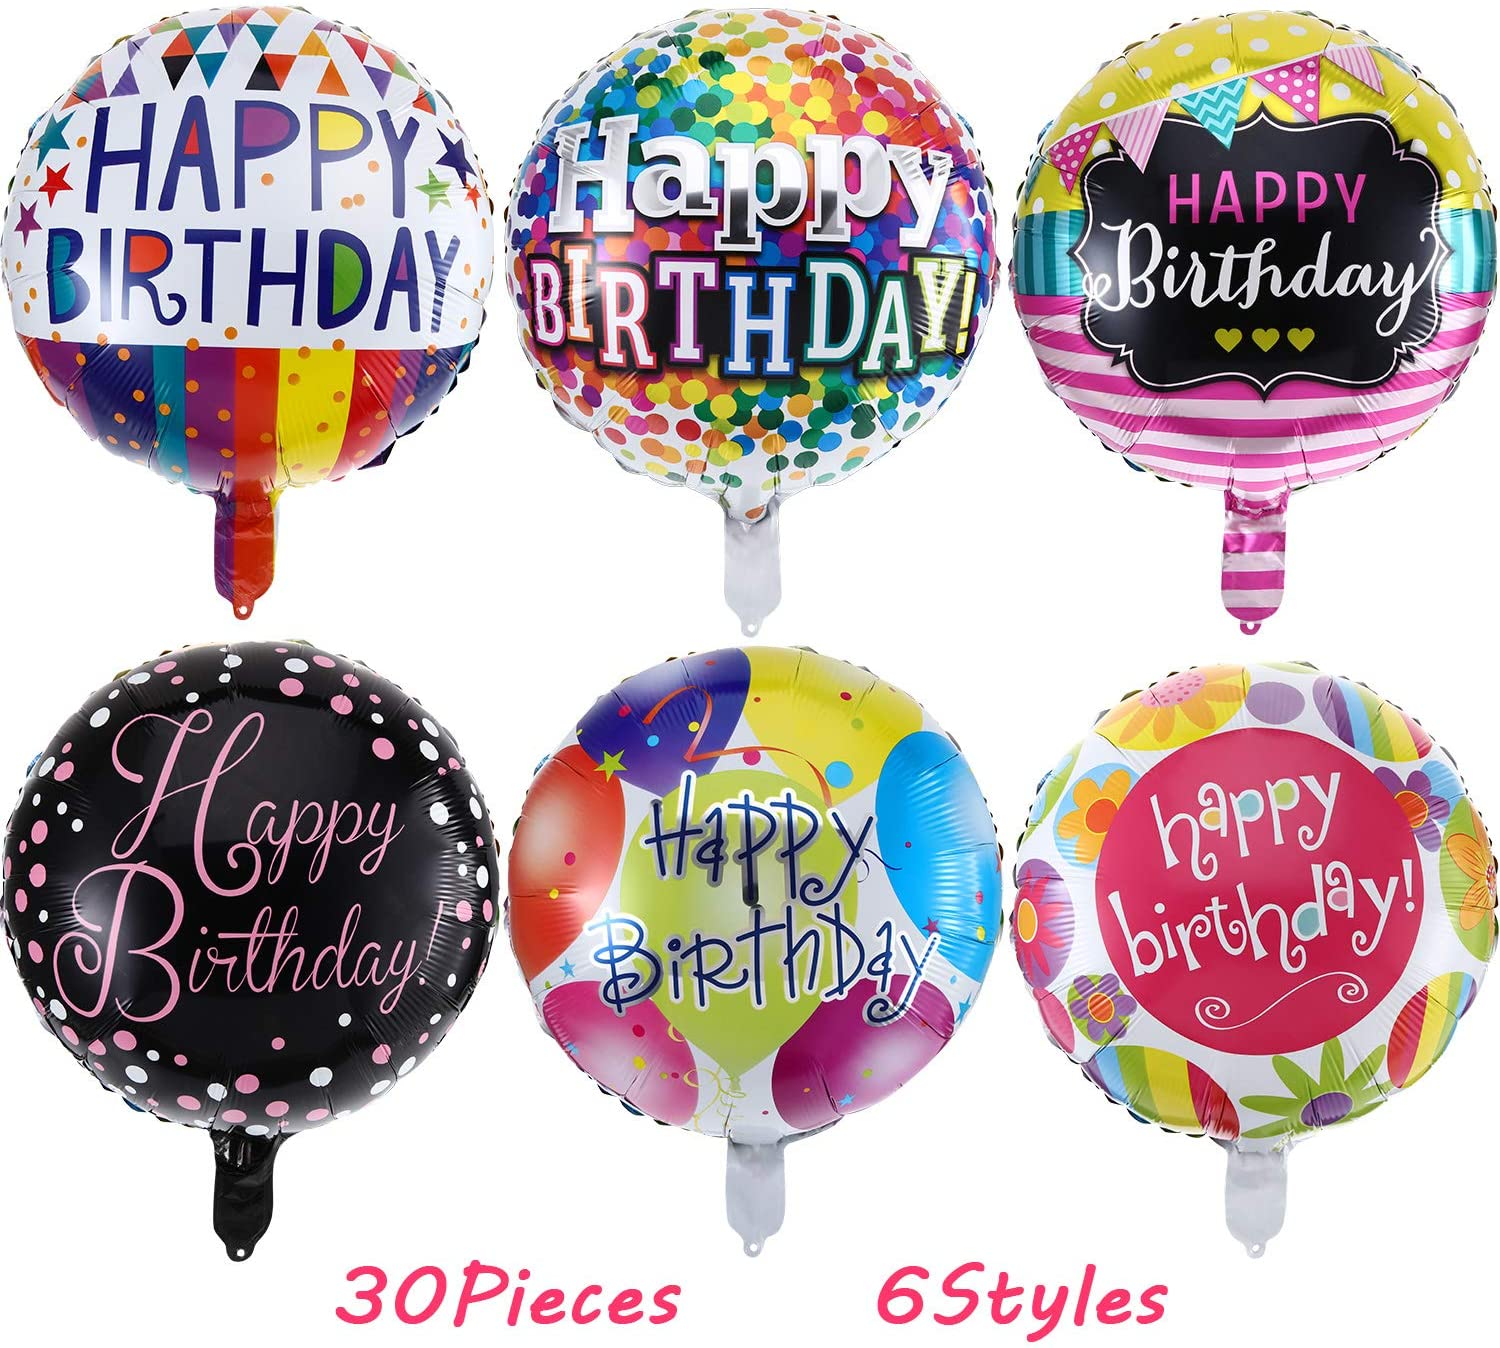 37 Packaged Happy Birthday Balloon Bouquet Shape Helium Balloon